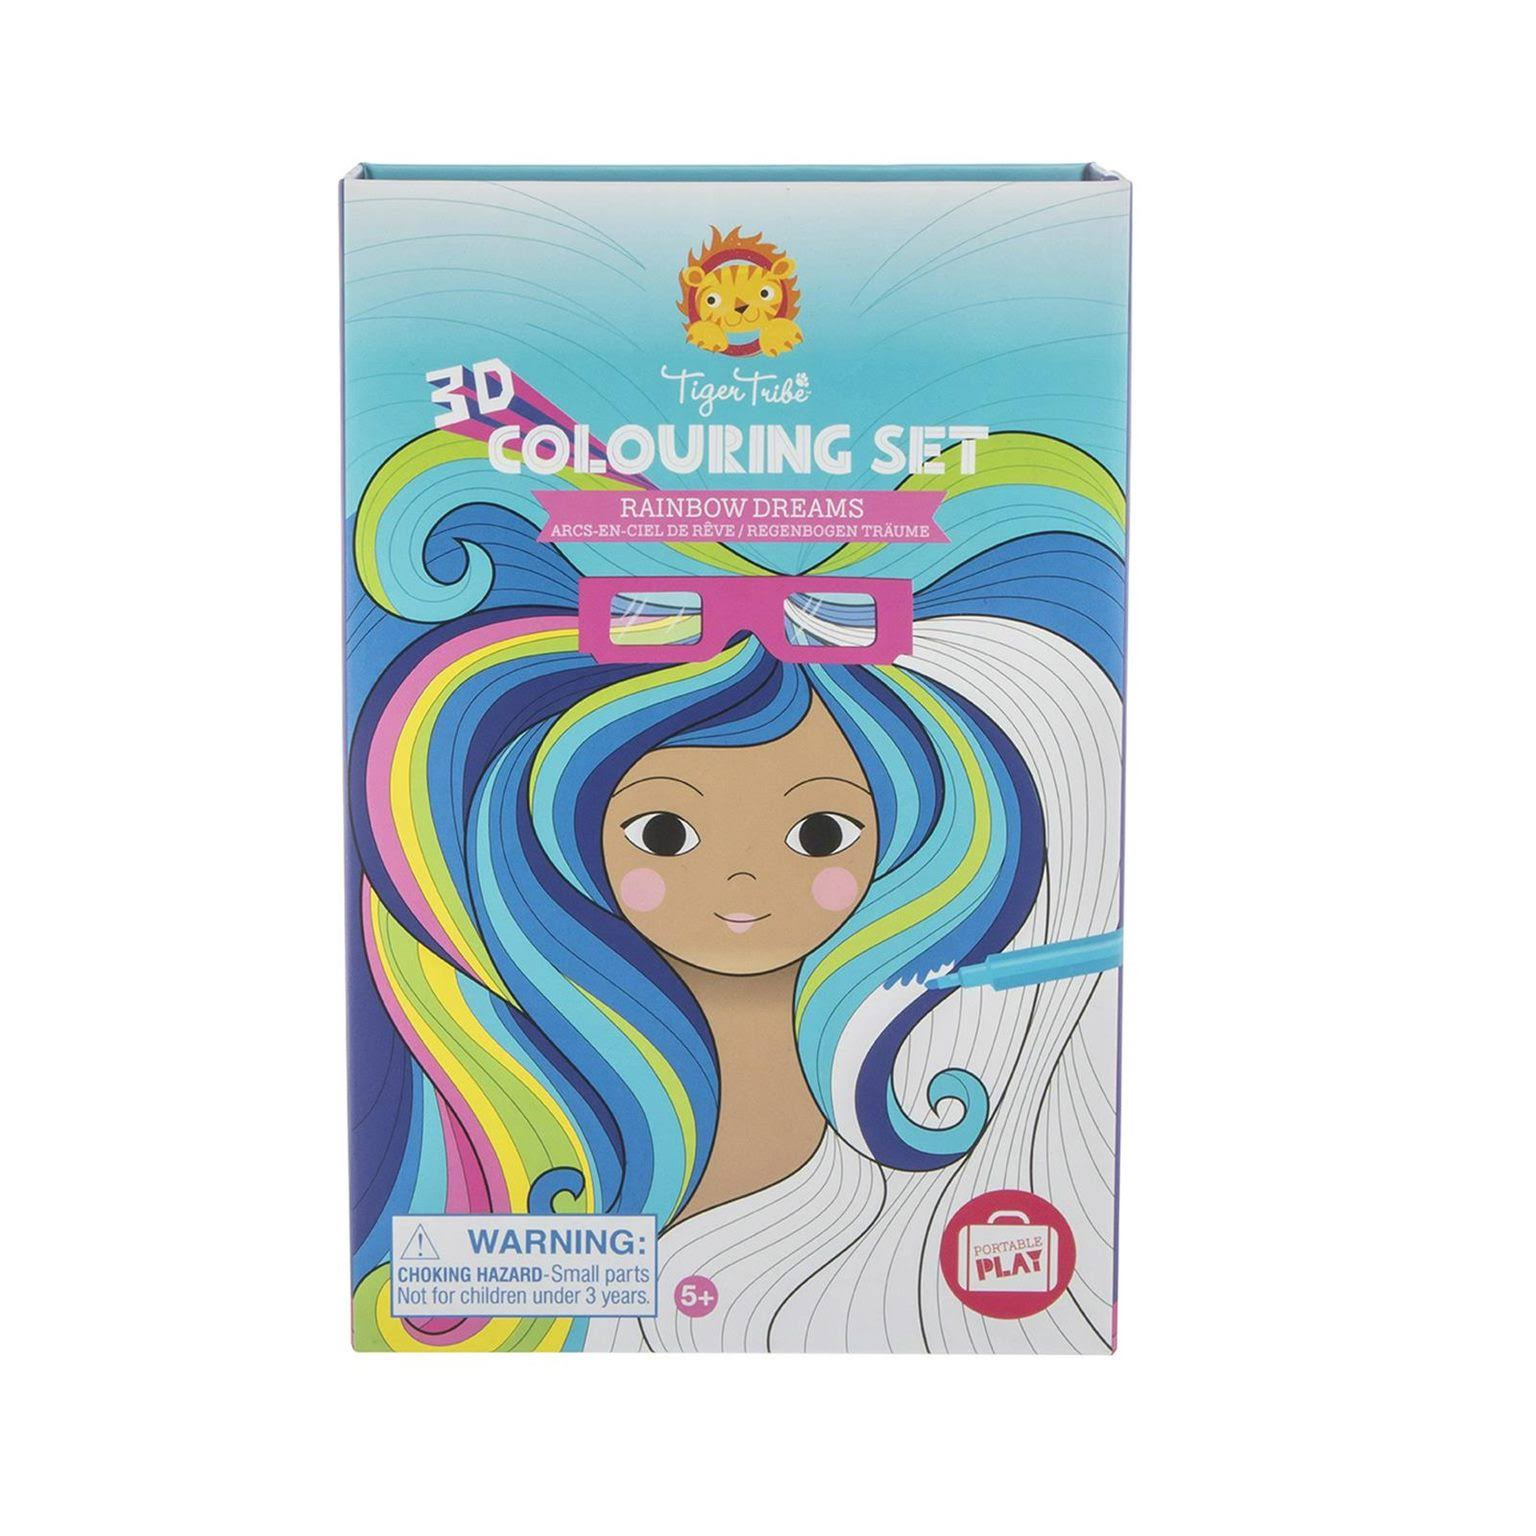 Tiger Tribe Rainbow Dreams - 3D Colouring Set